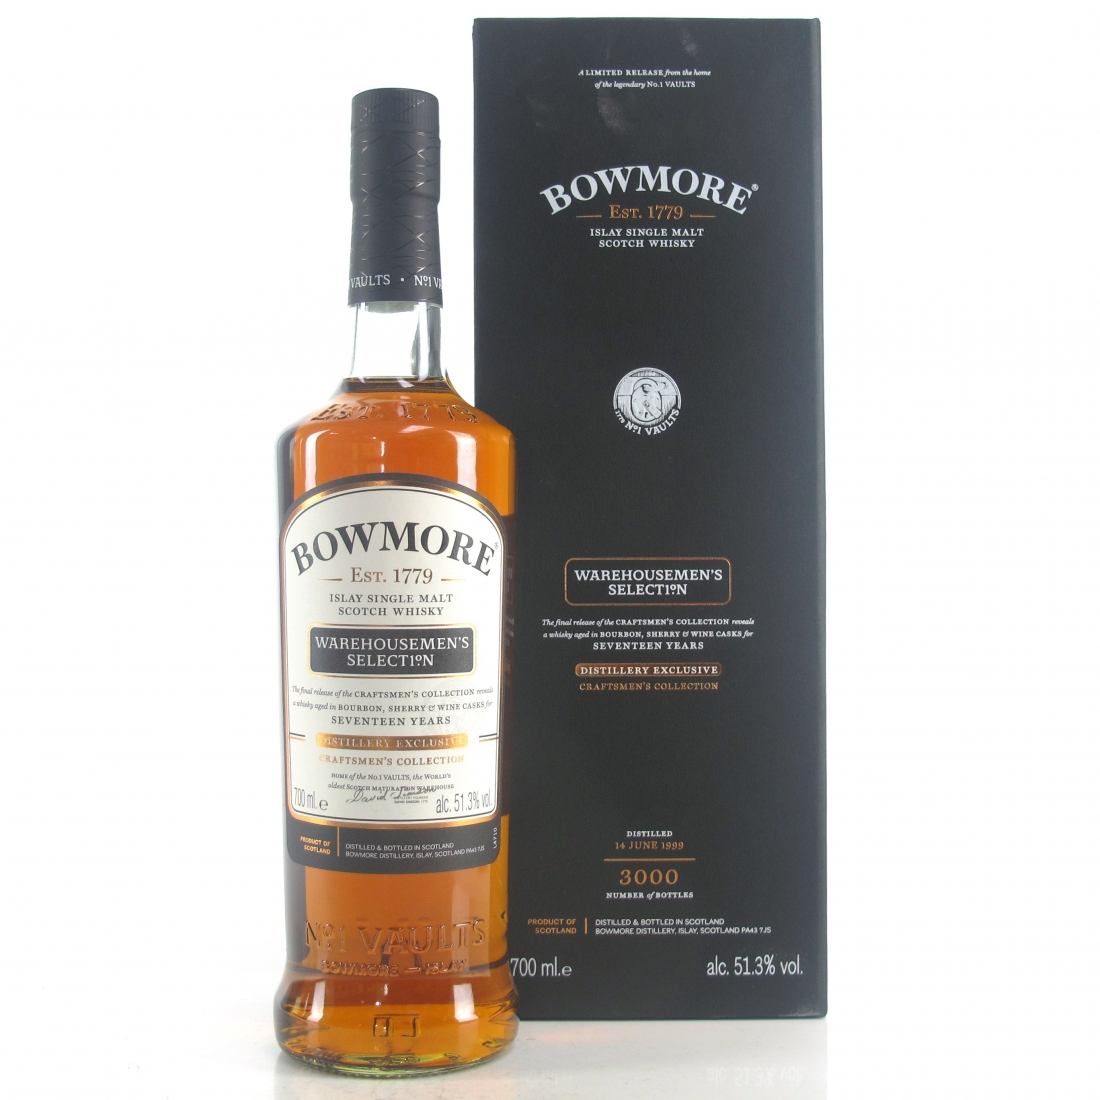 Bowmore 1999 Warehousemen's Selection 17 Year Old / Distillery Exclusive